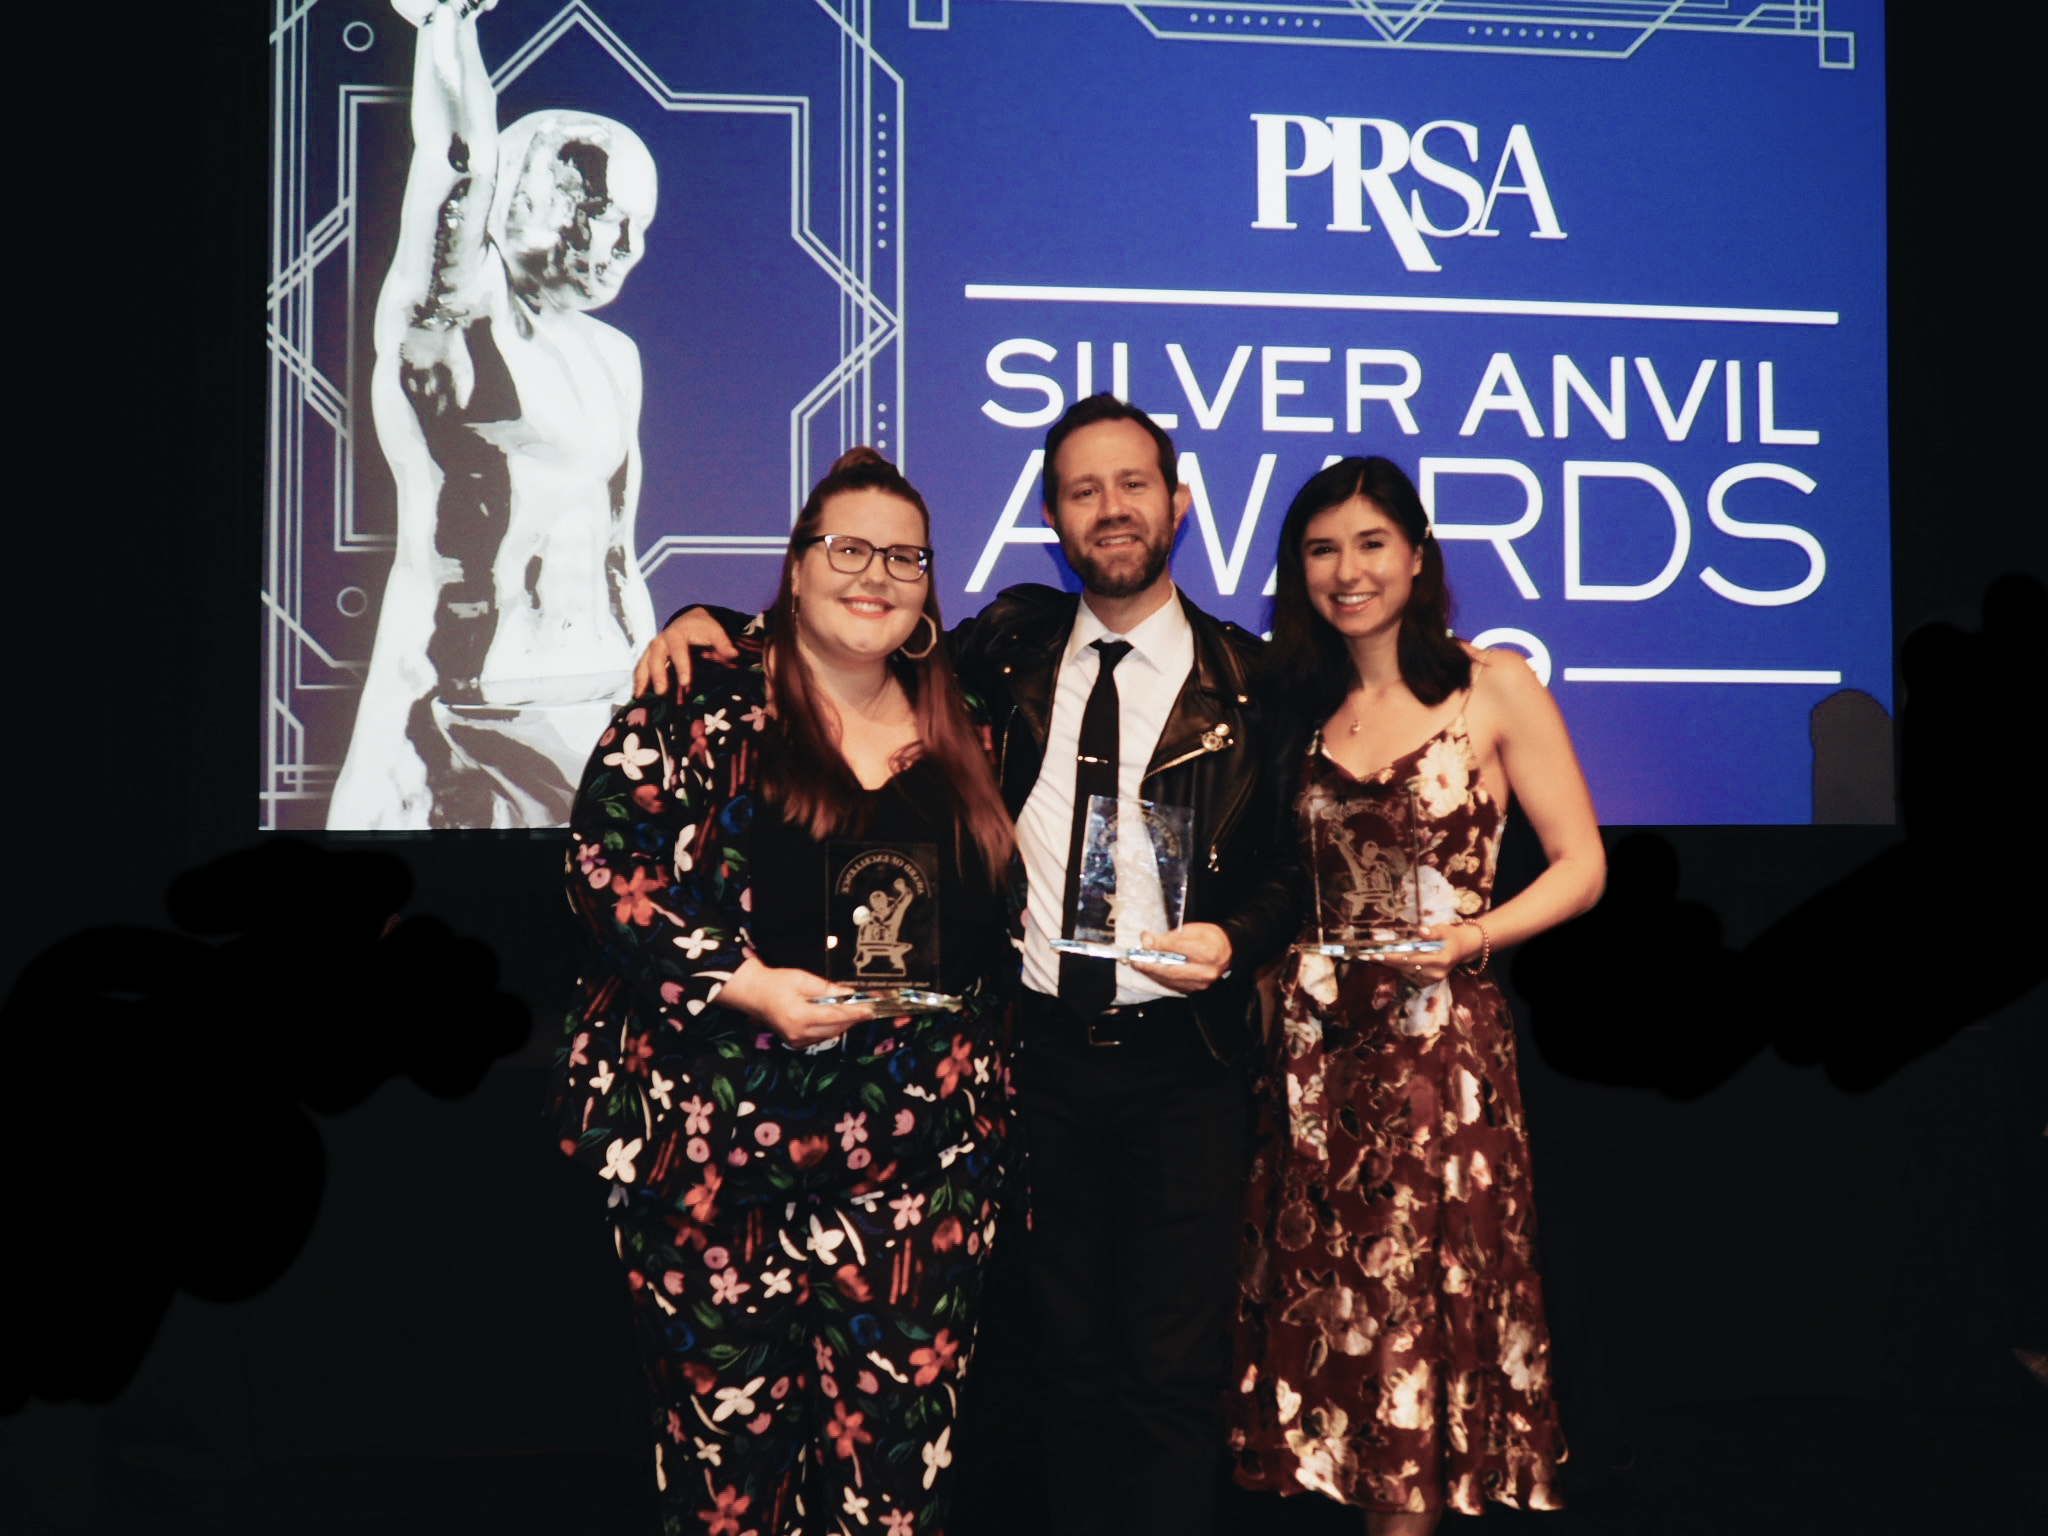 At the PRSA Anvil Awards